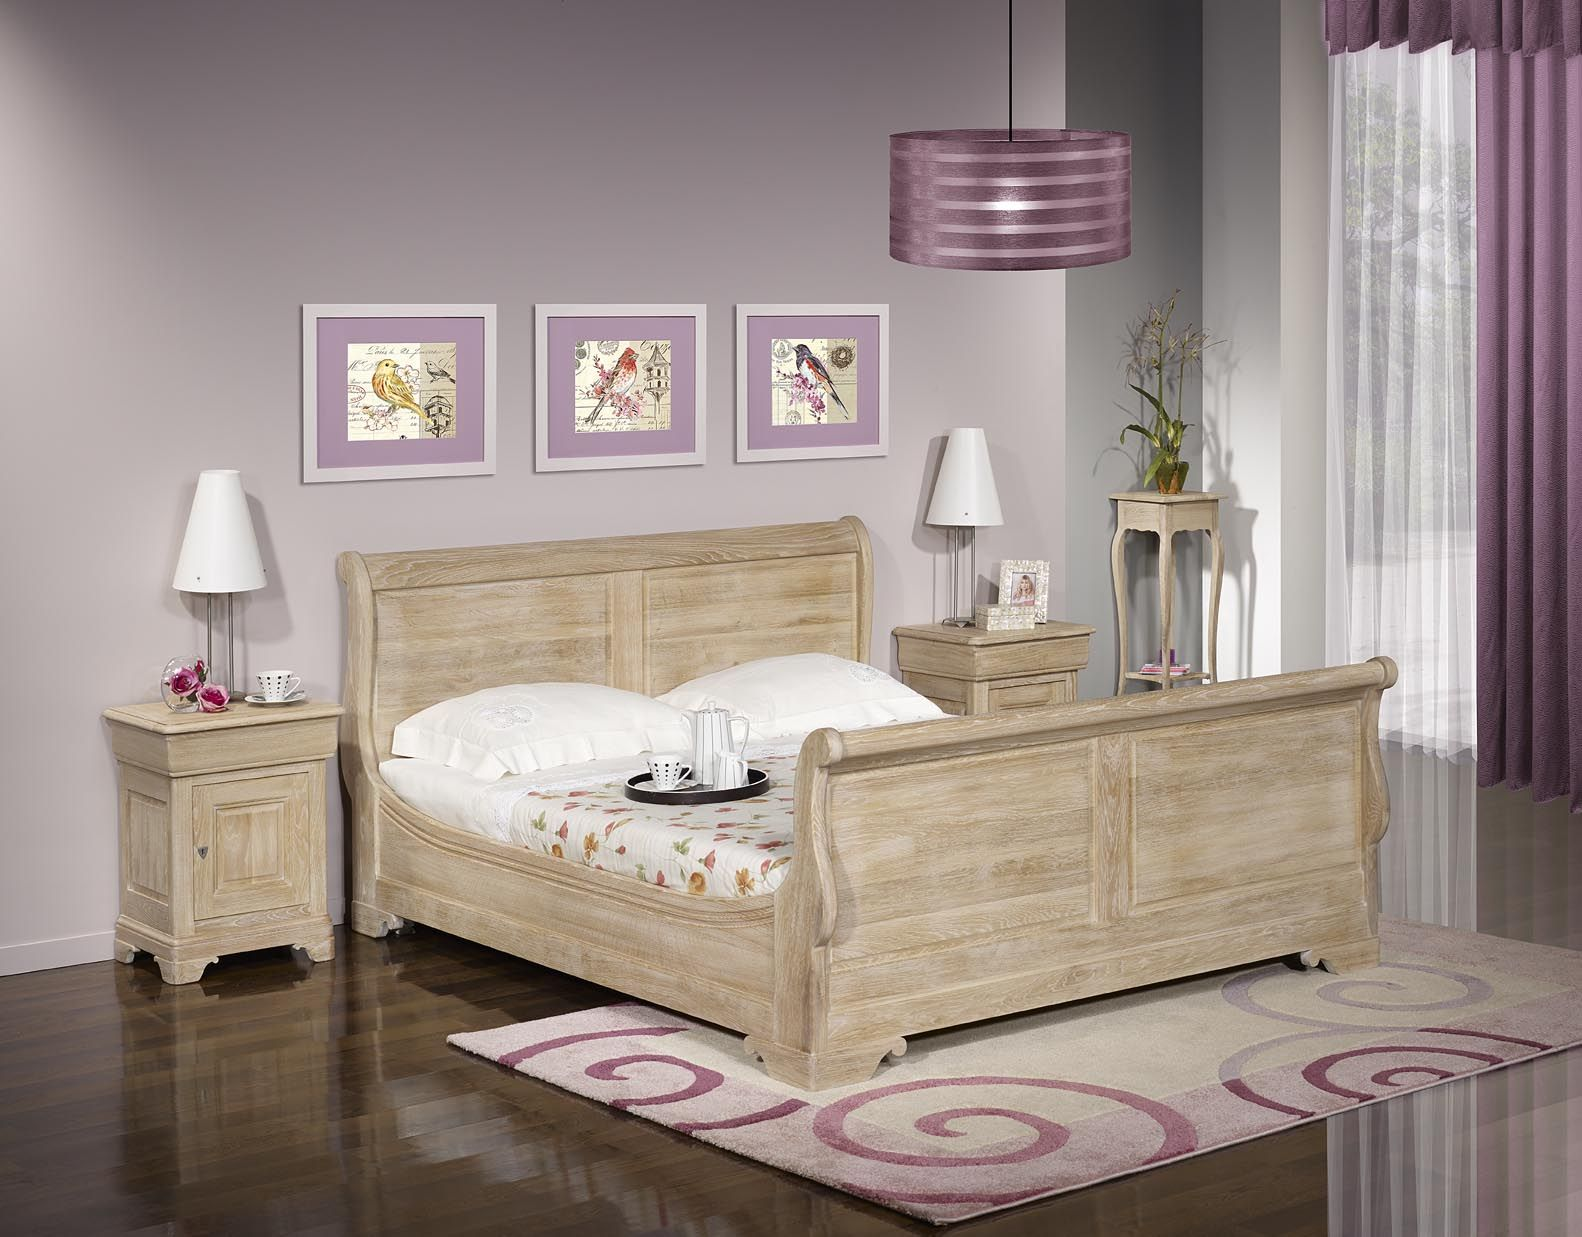 lit bateau martin en ch ne massif 140 190 de style louis philippe finition ch ne bross blanchi. Black Bedroom Furniture Sets. Home Design Ideas